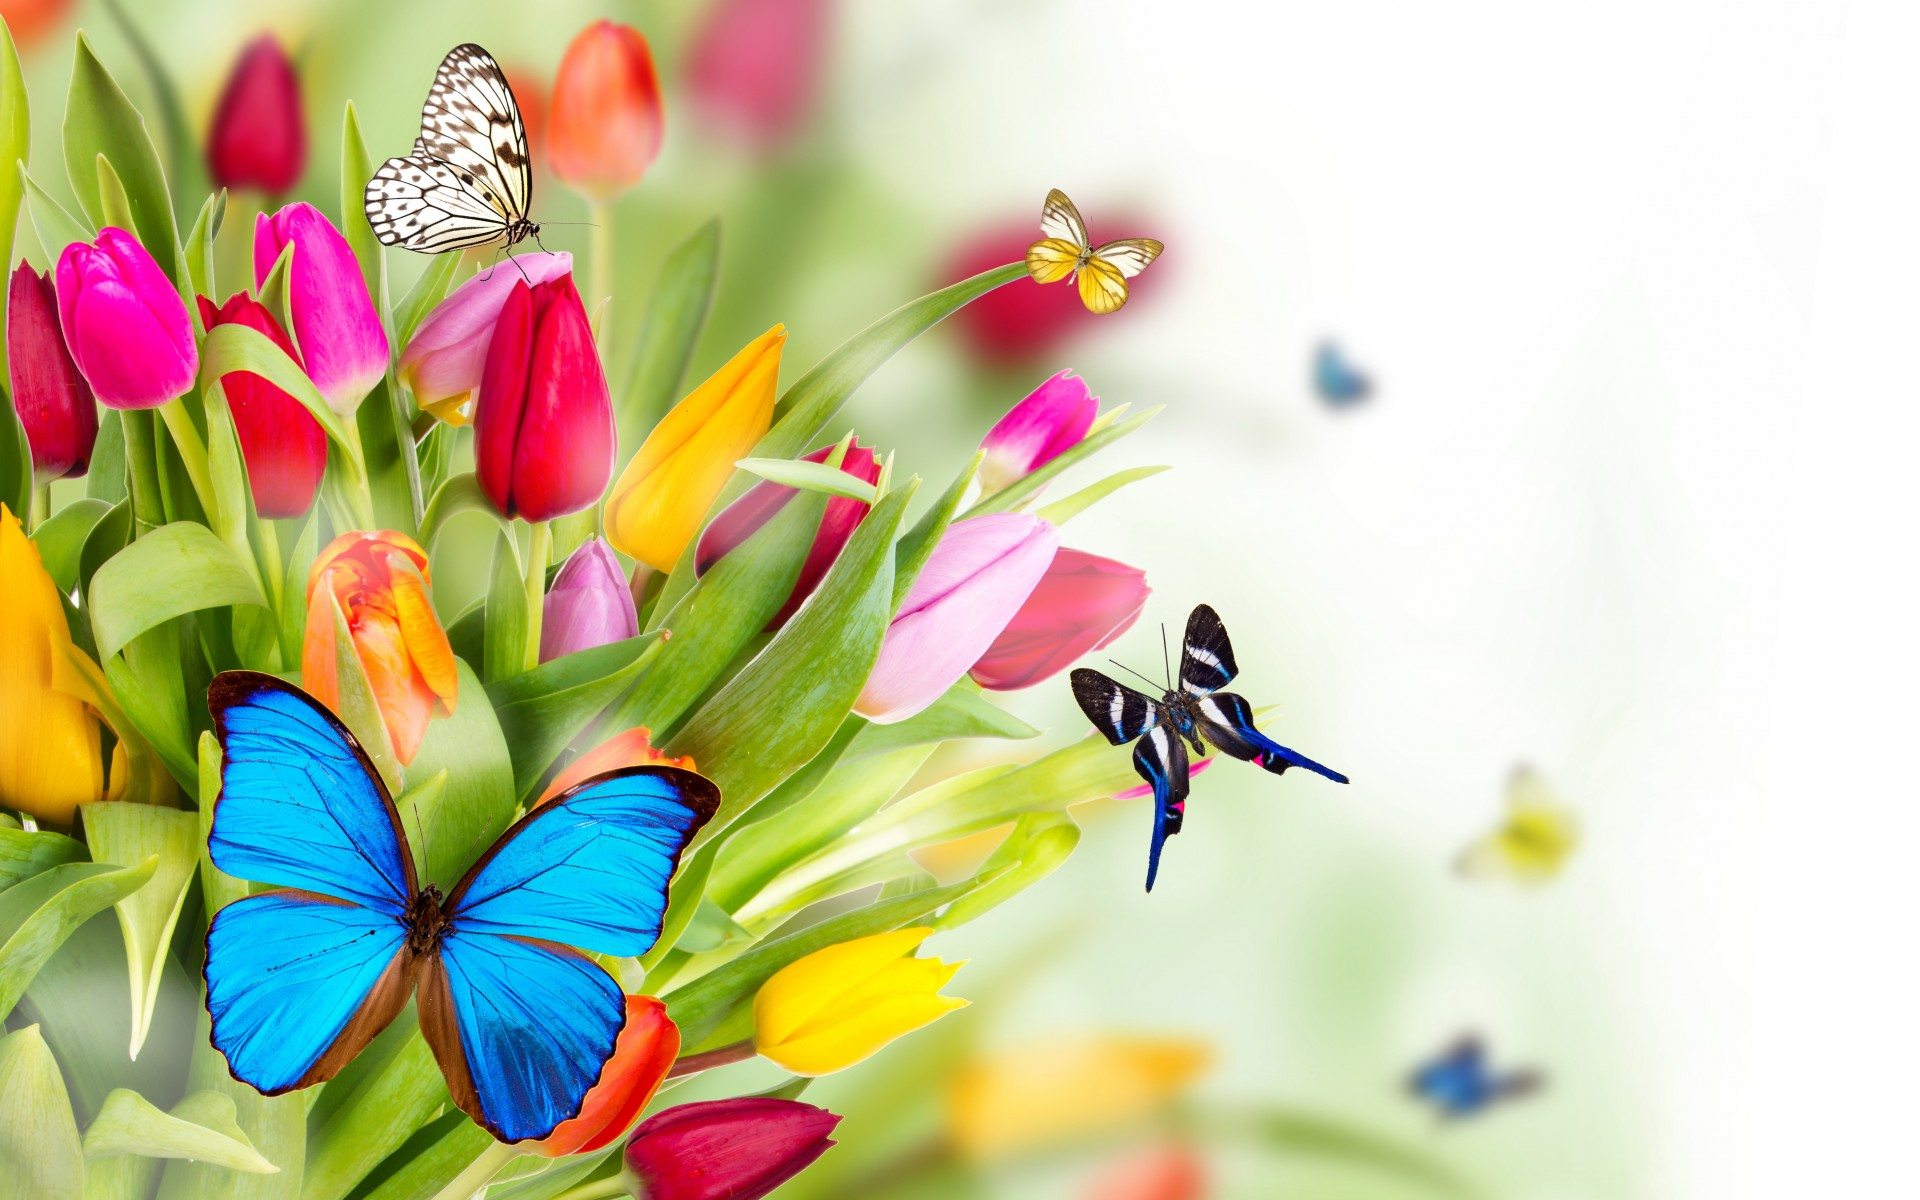 Spring Flowers Images Wallpaper 1920x1200 66688